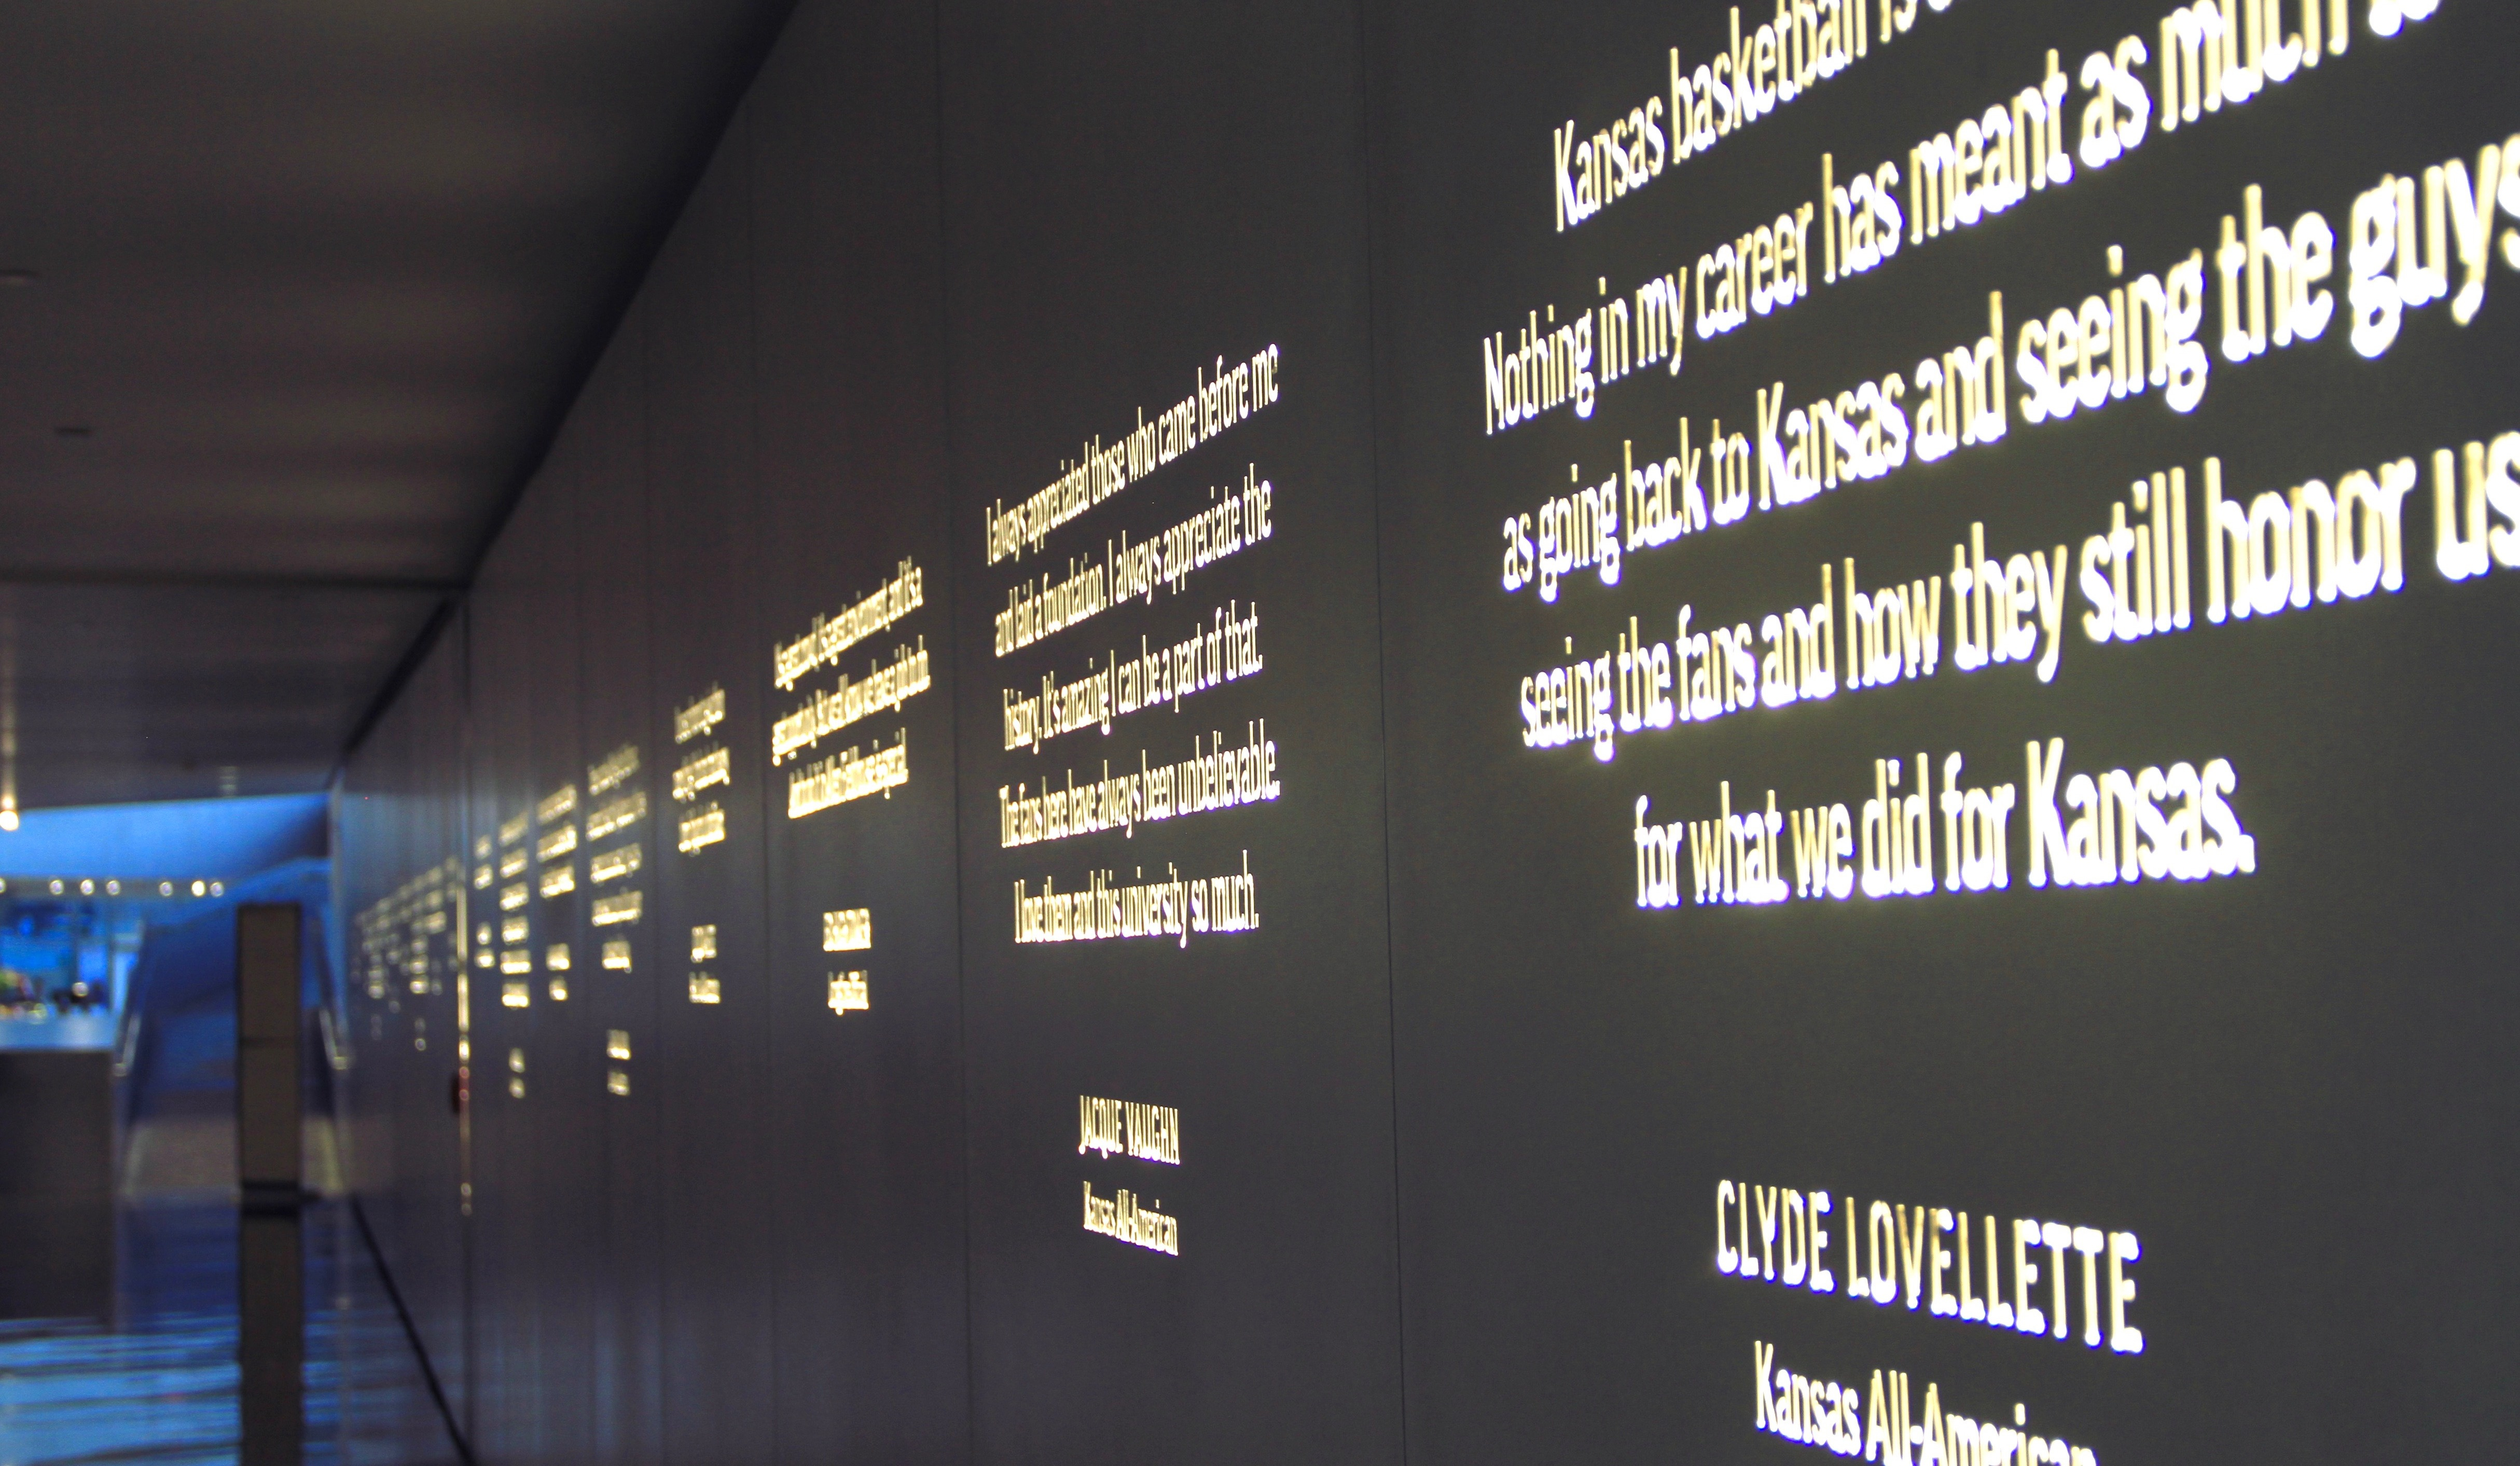 Photo of the Wall of Quotes from Allen Fieldhouse.